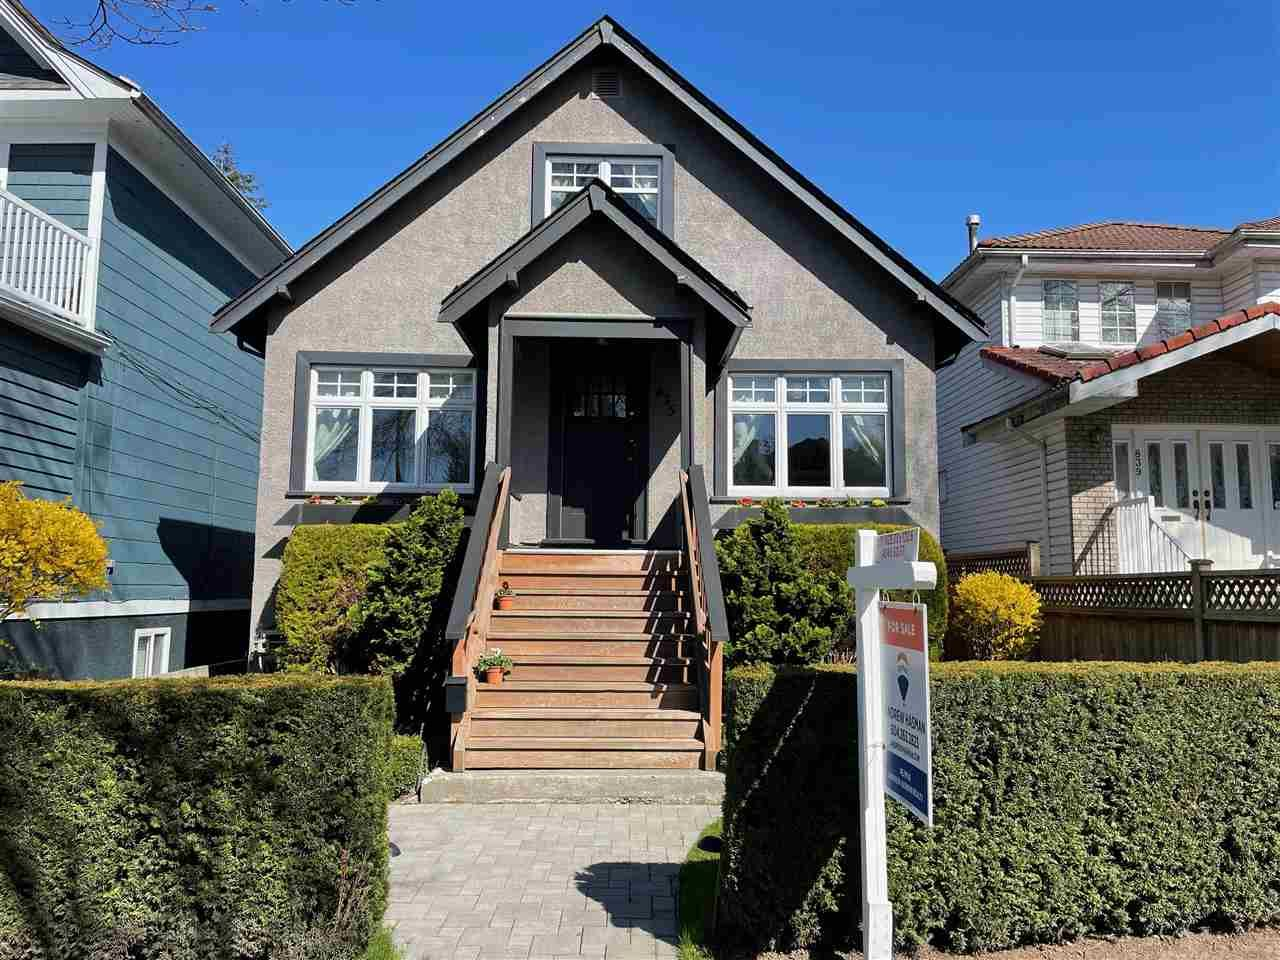 Main Photo: 835 E 27TH Avenue in Vancouver: Fraser VE House for sale (Vancouver East)  : MLS®# R2560281